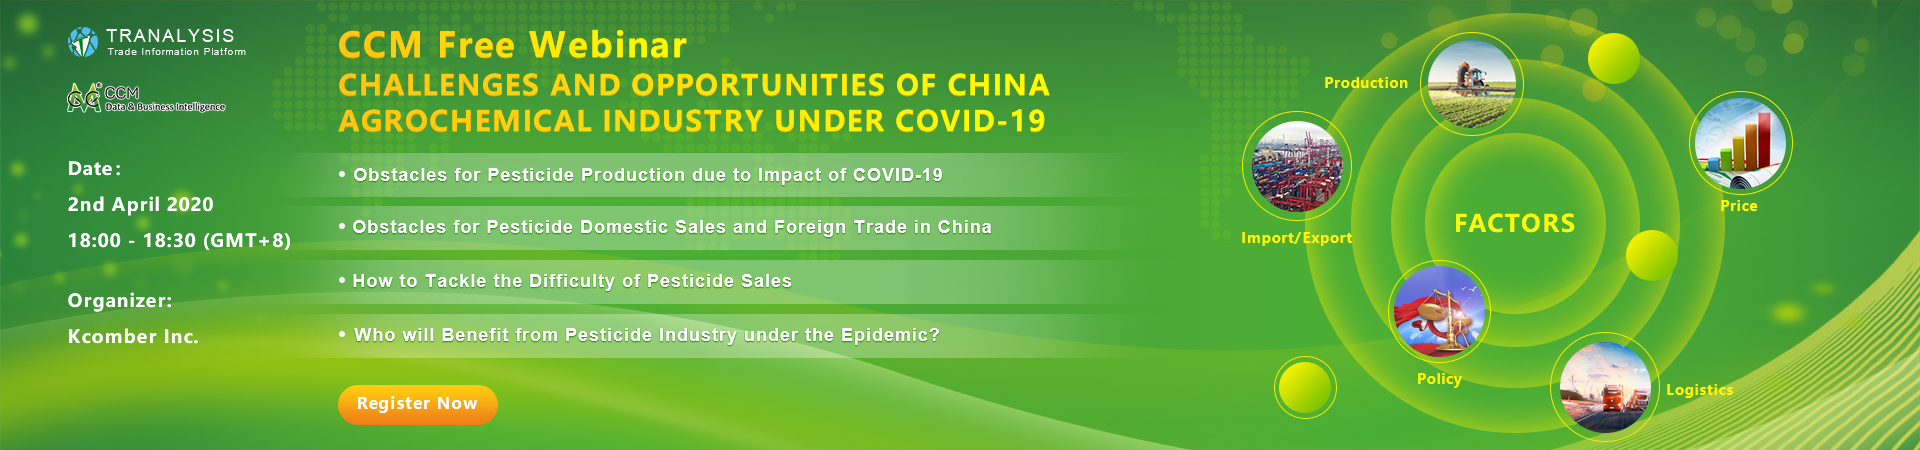 CHALLENGES AND OPPORTUNITIES OF CHINA AGROCHEMICAL INDUSTRY UNDER COVID_19